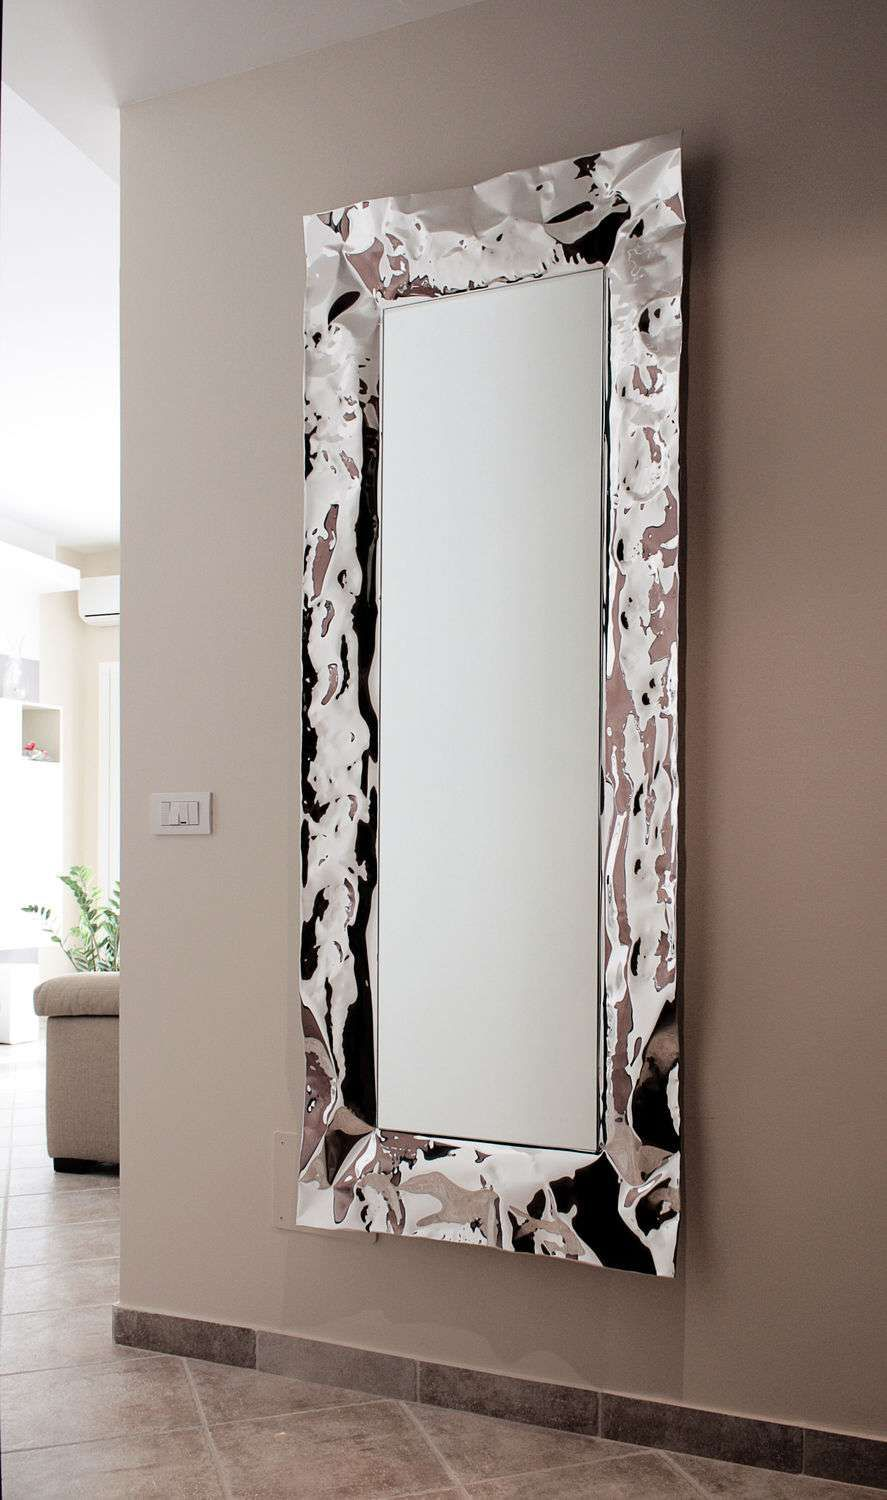 grand miroir mural pour une d co l gante grand miroir pinterest grands miroirs muraux. Black Bedroom Furniture Sets. Home Design Ideas